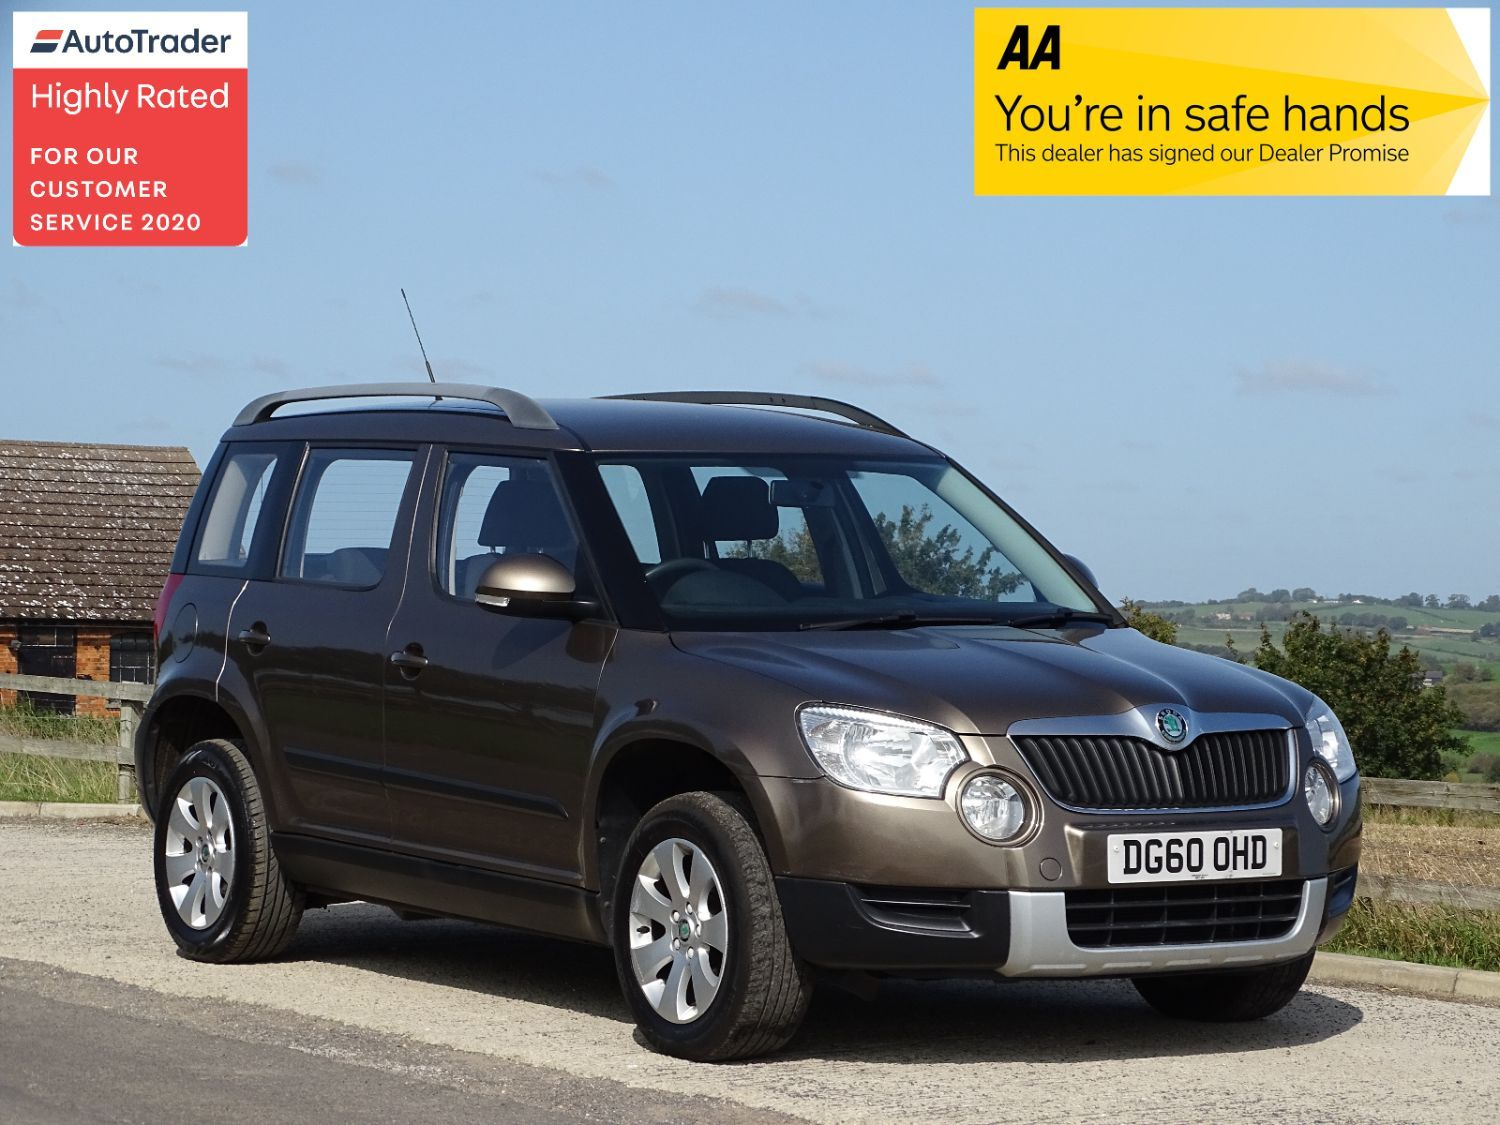 Used Skoda Yeti In Thame Buckinghamshire Carnatics Motor Company Limited